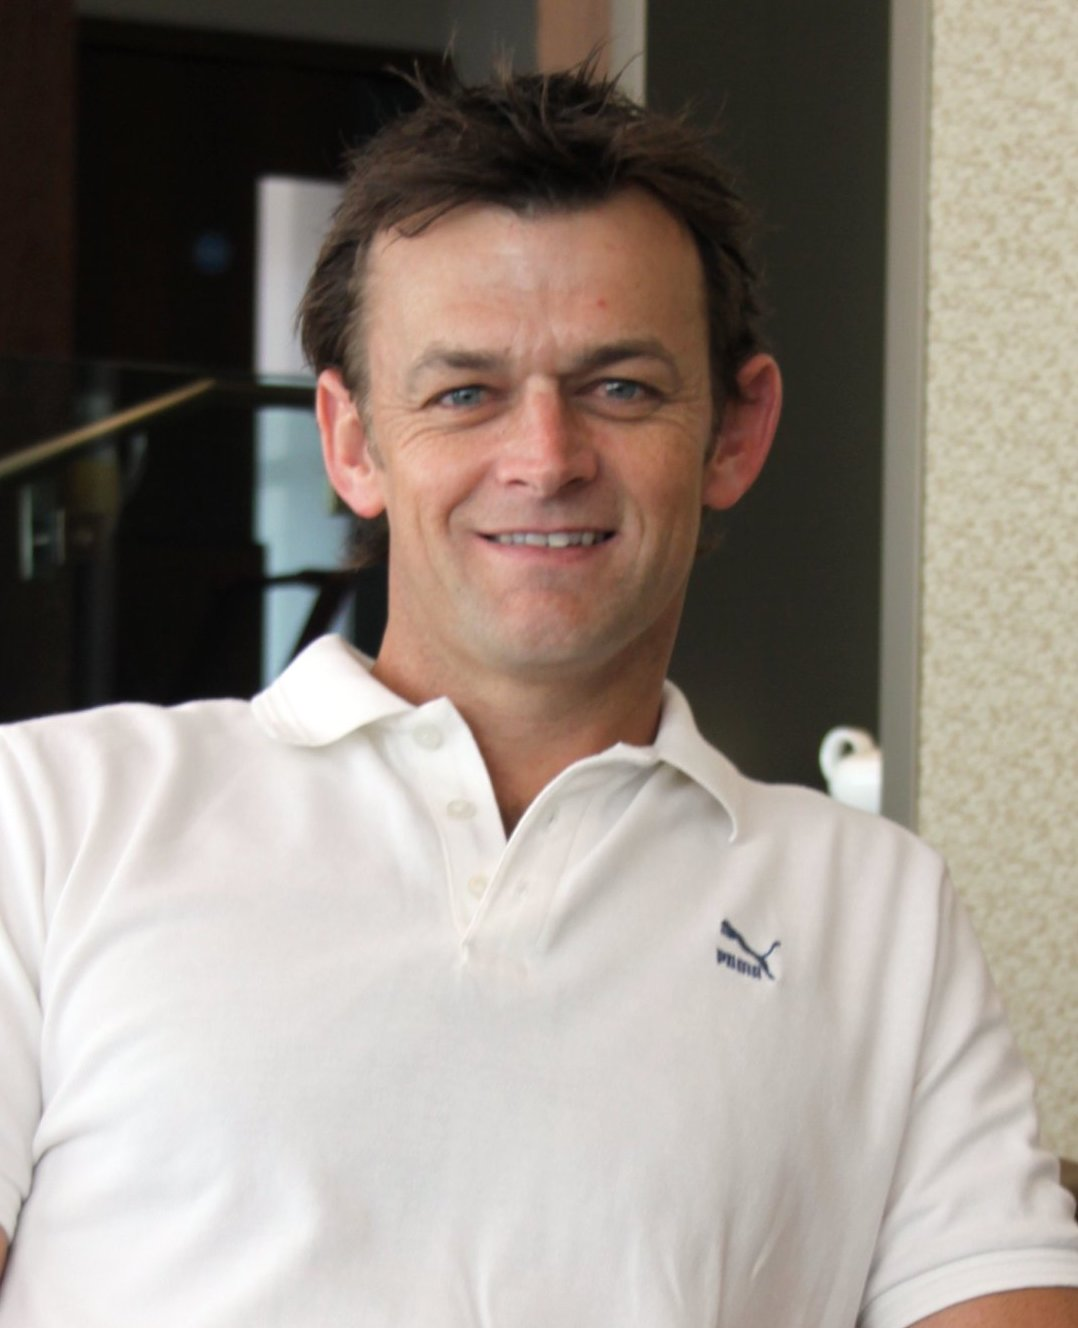 The 48-year old son of father Stanley Gilchrist and mother June Gilchrist Adam Gilchrist in 2019 photo. Adam Gilchrist earned a  million dollar salary - leaving the net worth at 3.5 million in 2019